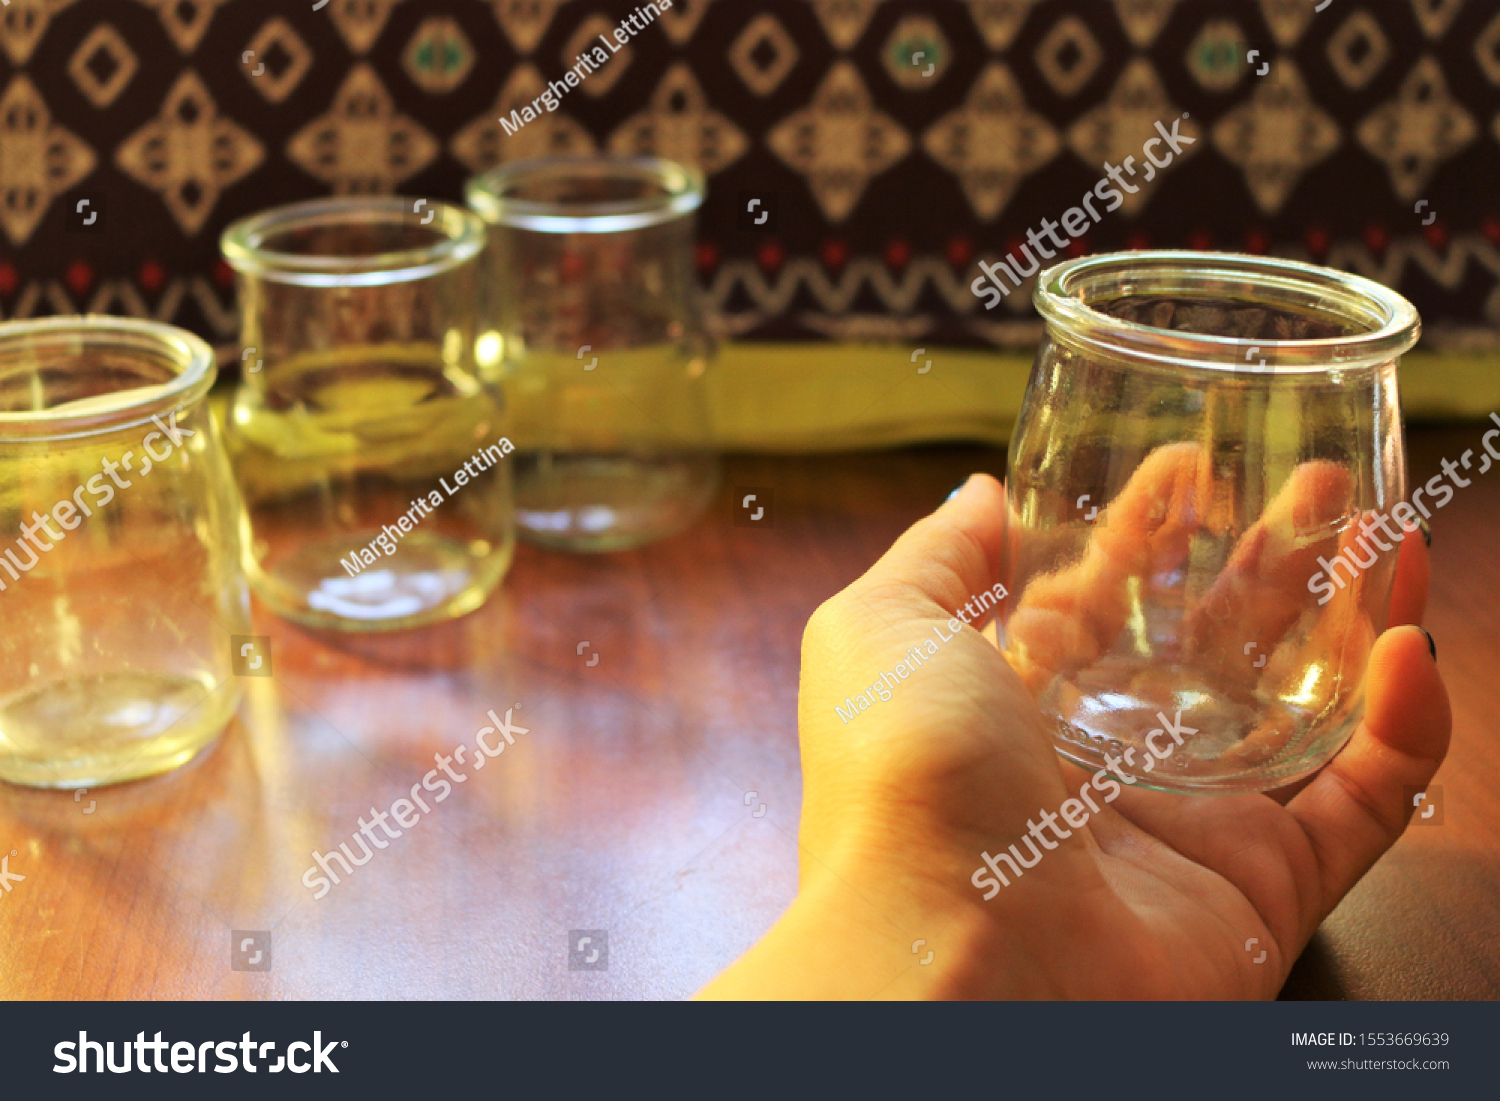 Small Glass Jar Empty Diy Craft Stock Photo Edit Now 1553669639